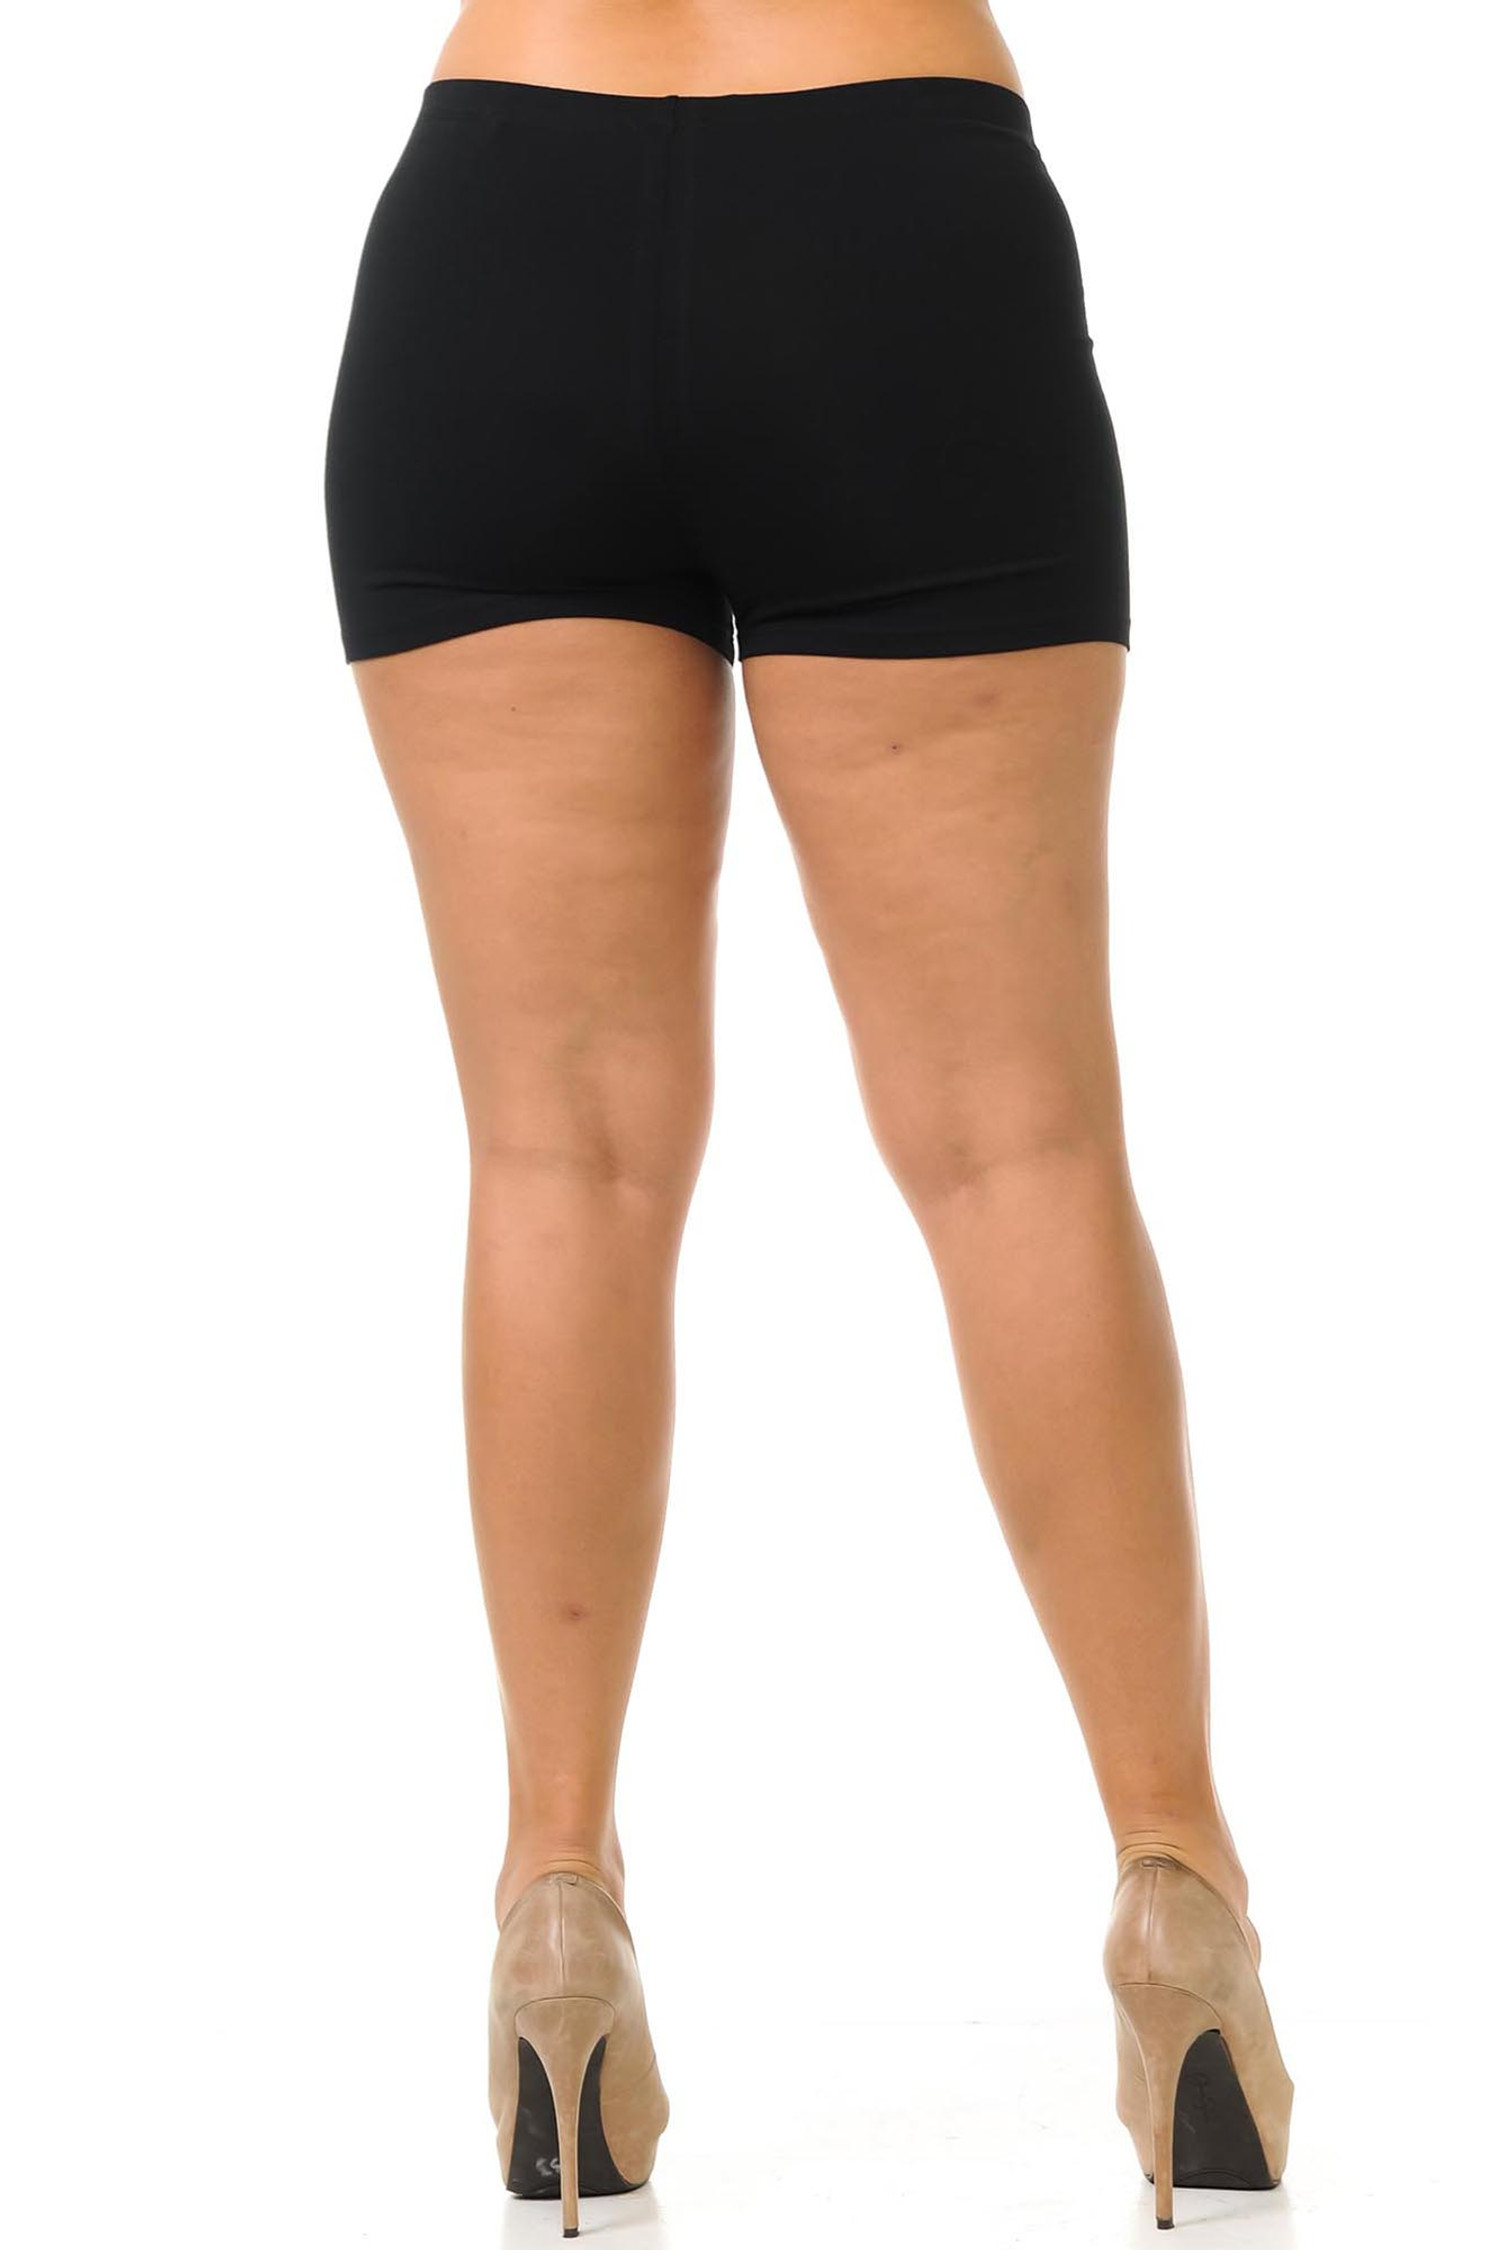 USA Plus Size Cotton Boy Shorts